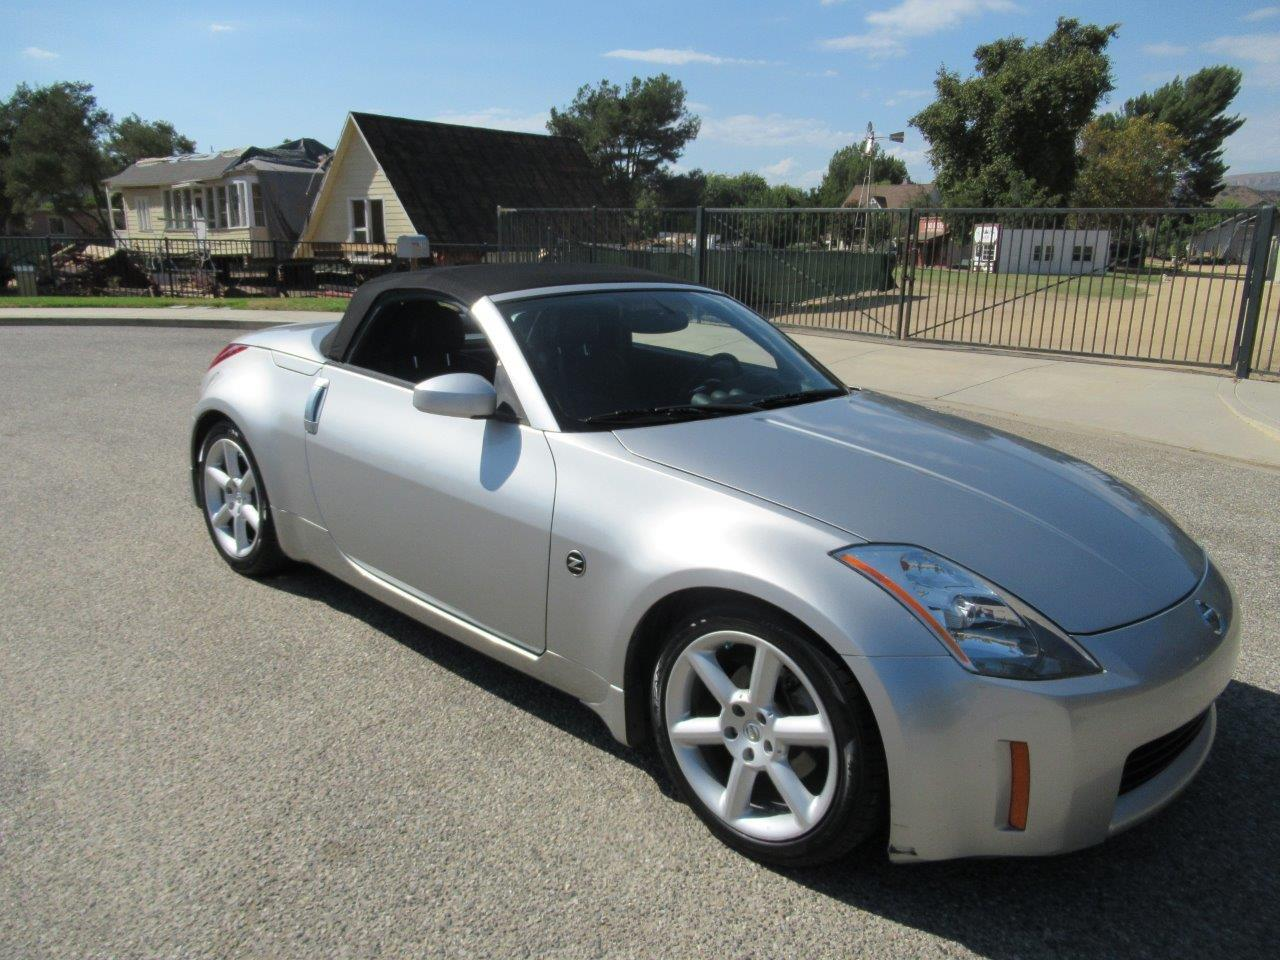 Large Picture of '05 Nissan 350Z located in SIMI VALLEY California - $7,950.00 Offered by California Cars - QXLK